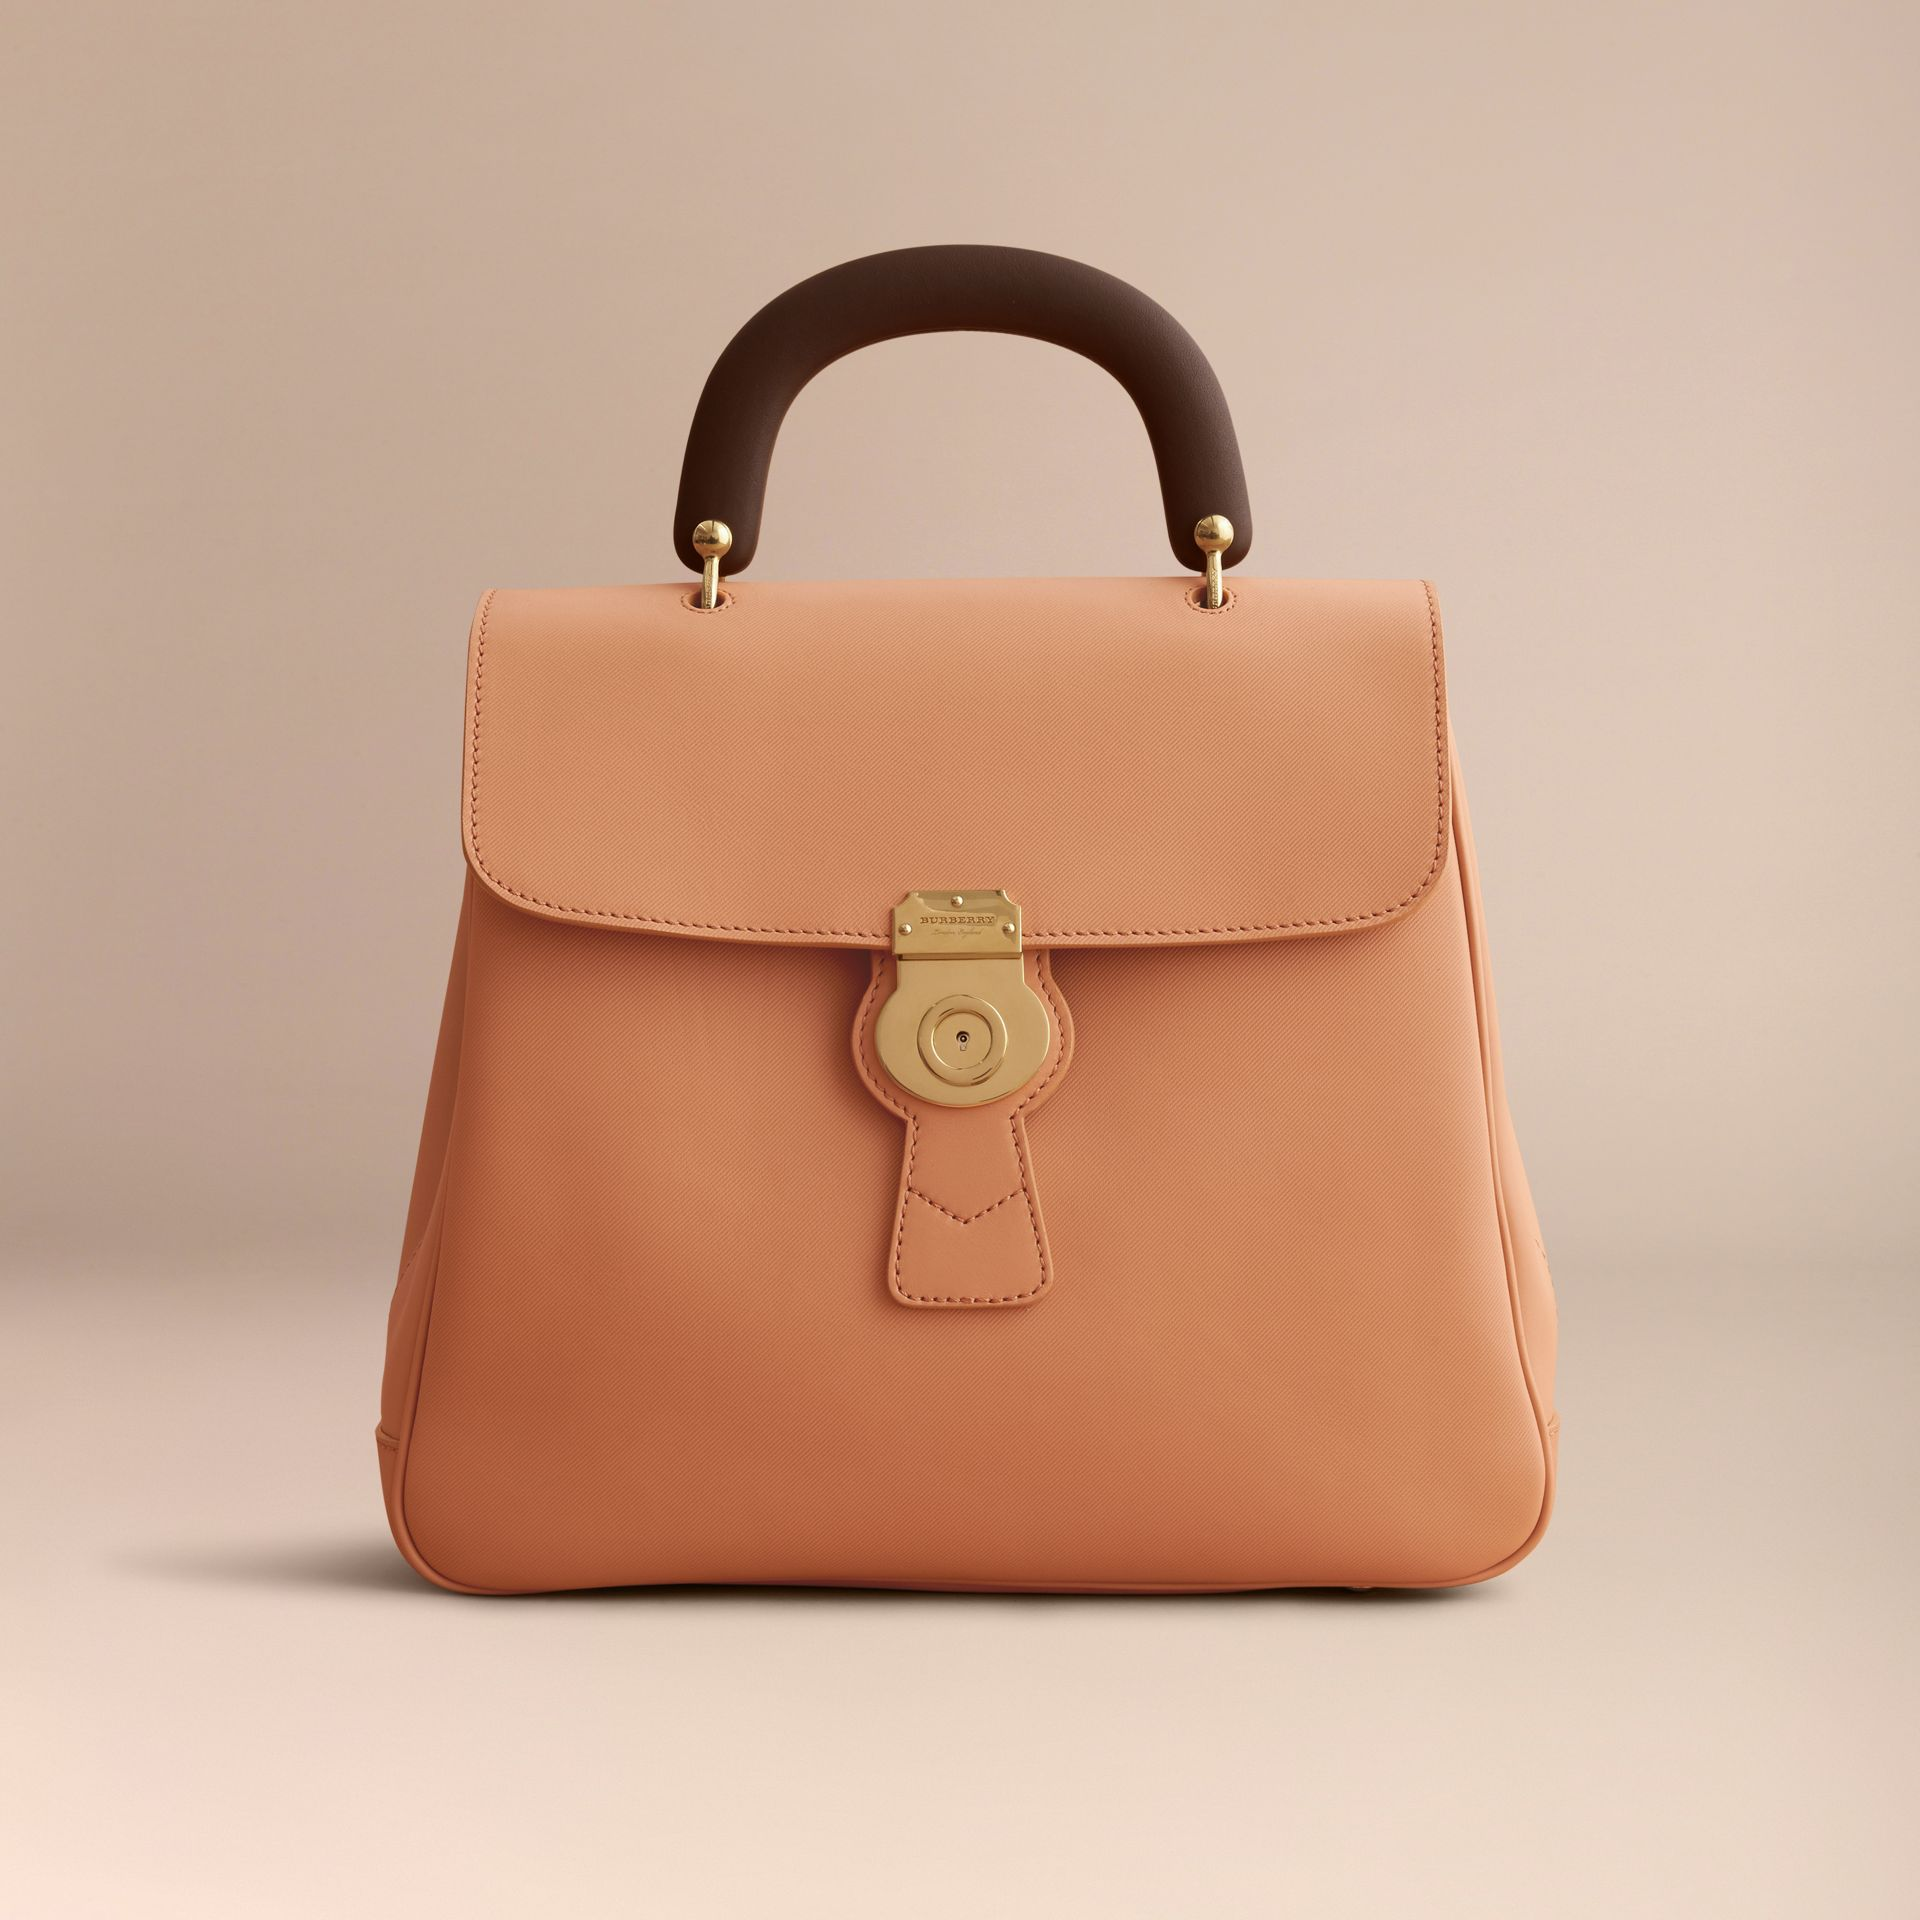 The Large DK88 Top Handle Bag in Pale Clementine - Women | Burberry Australia - gallery image 6